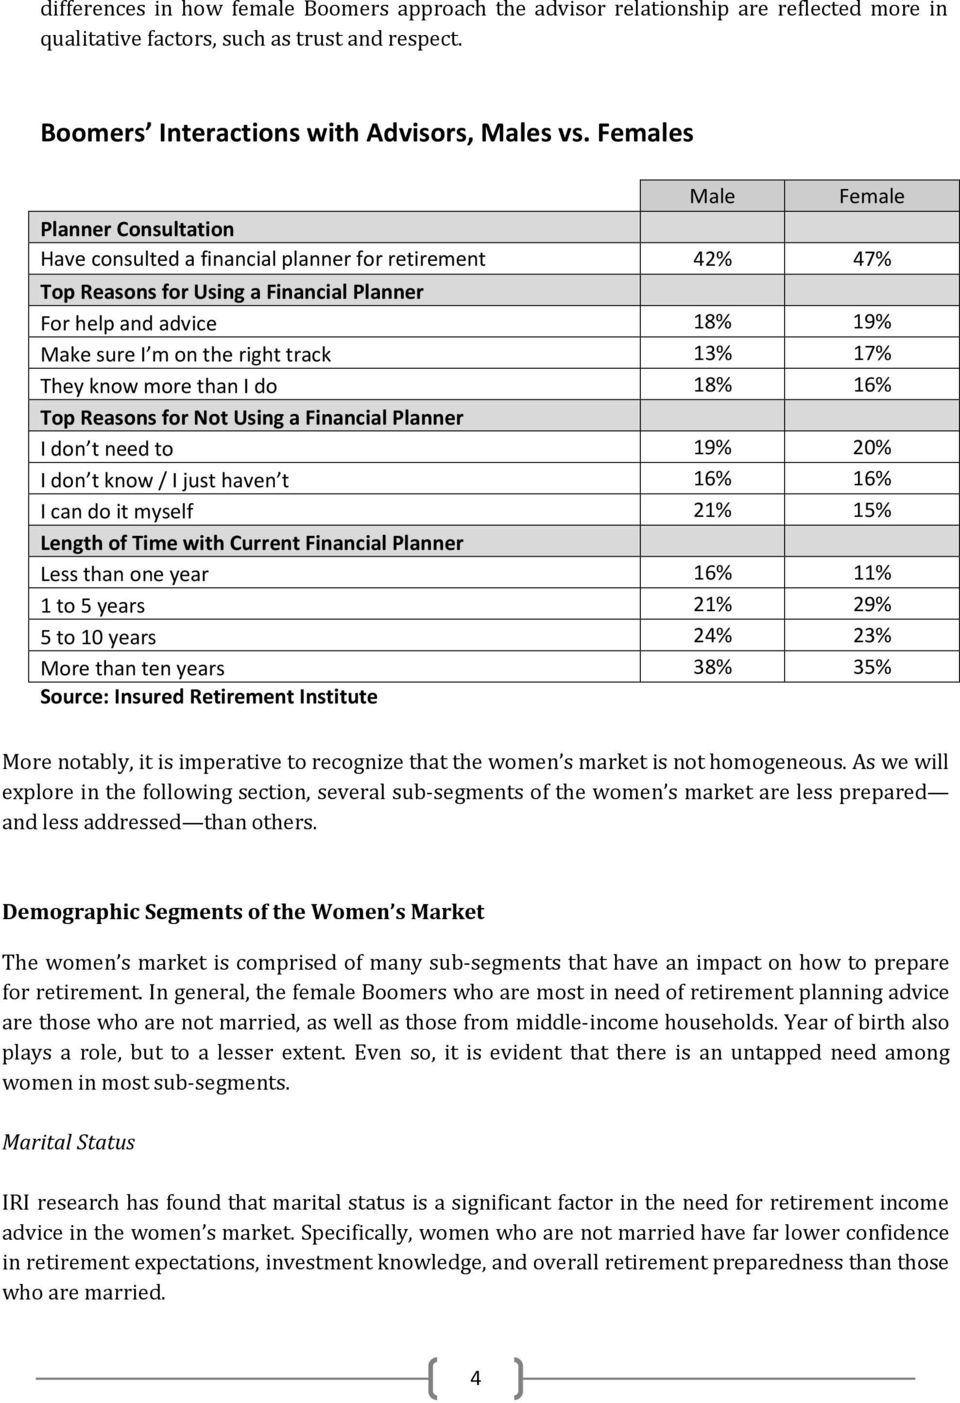 track 13% 17% They know more than I do 18% 16% Top Reasons for Not Using a Financial Planner I don t need to 19% 20% I don t know / I just haven t 16% 16% I can do it myself 21% 15% Length of Time